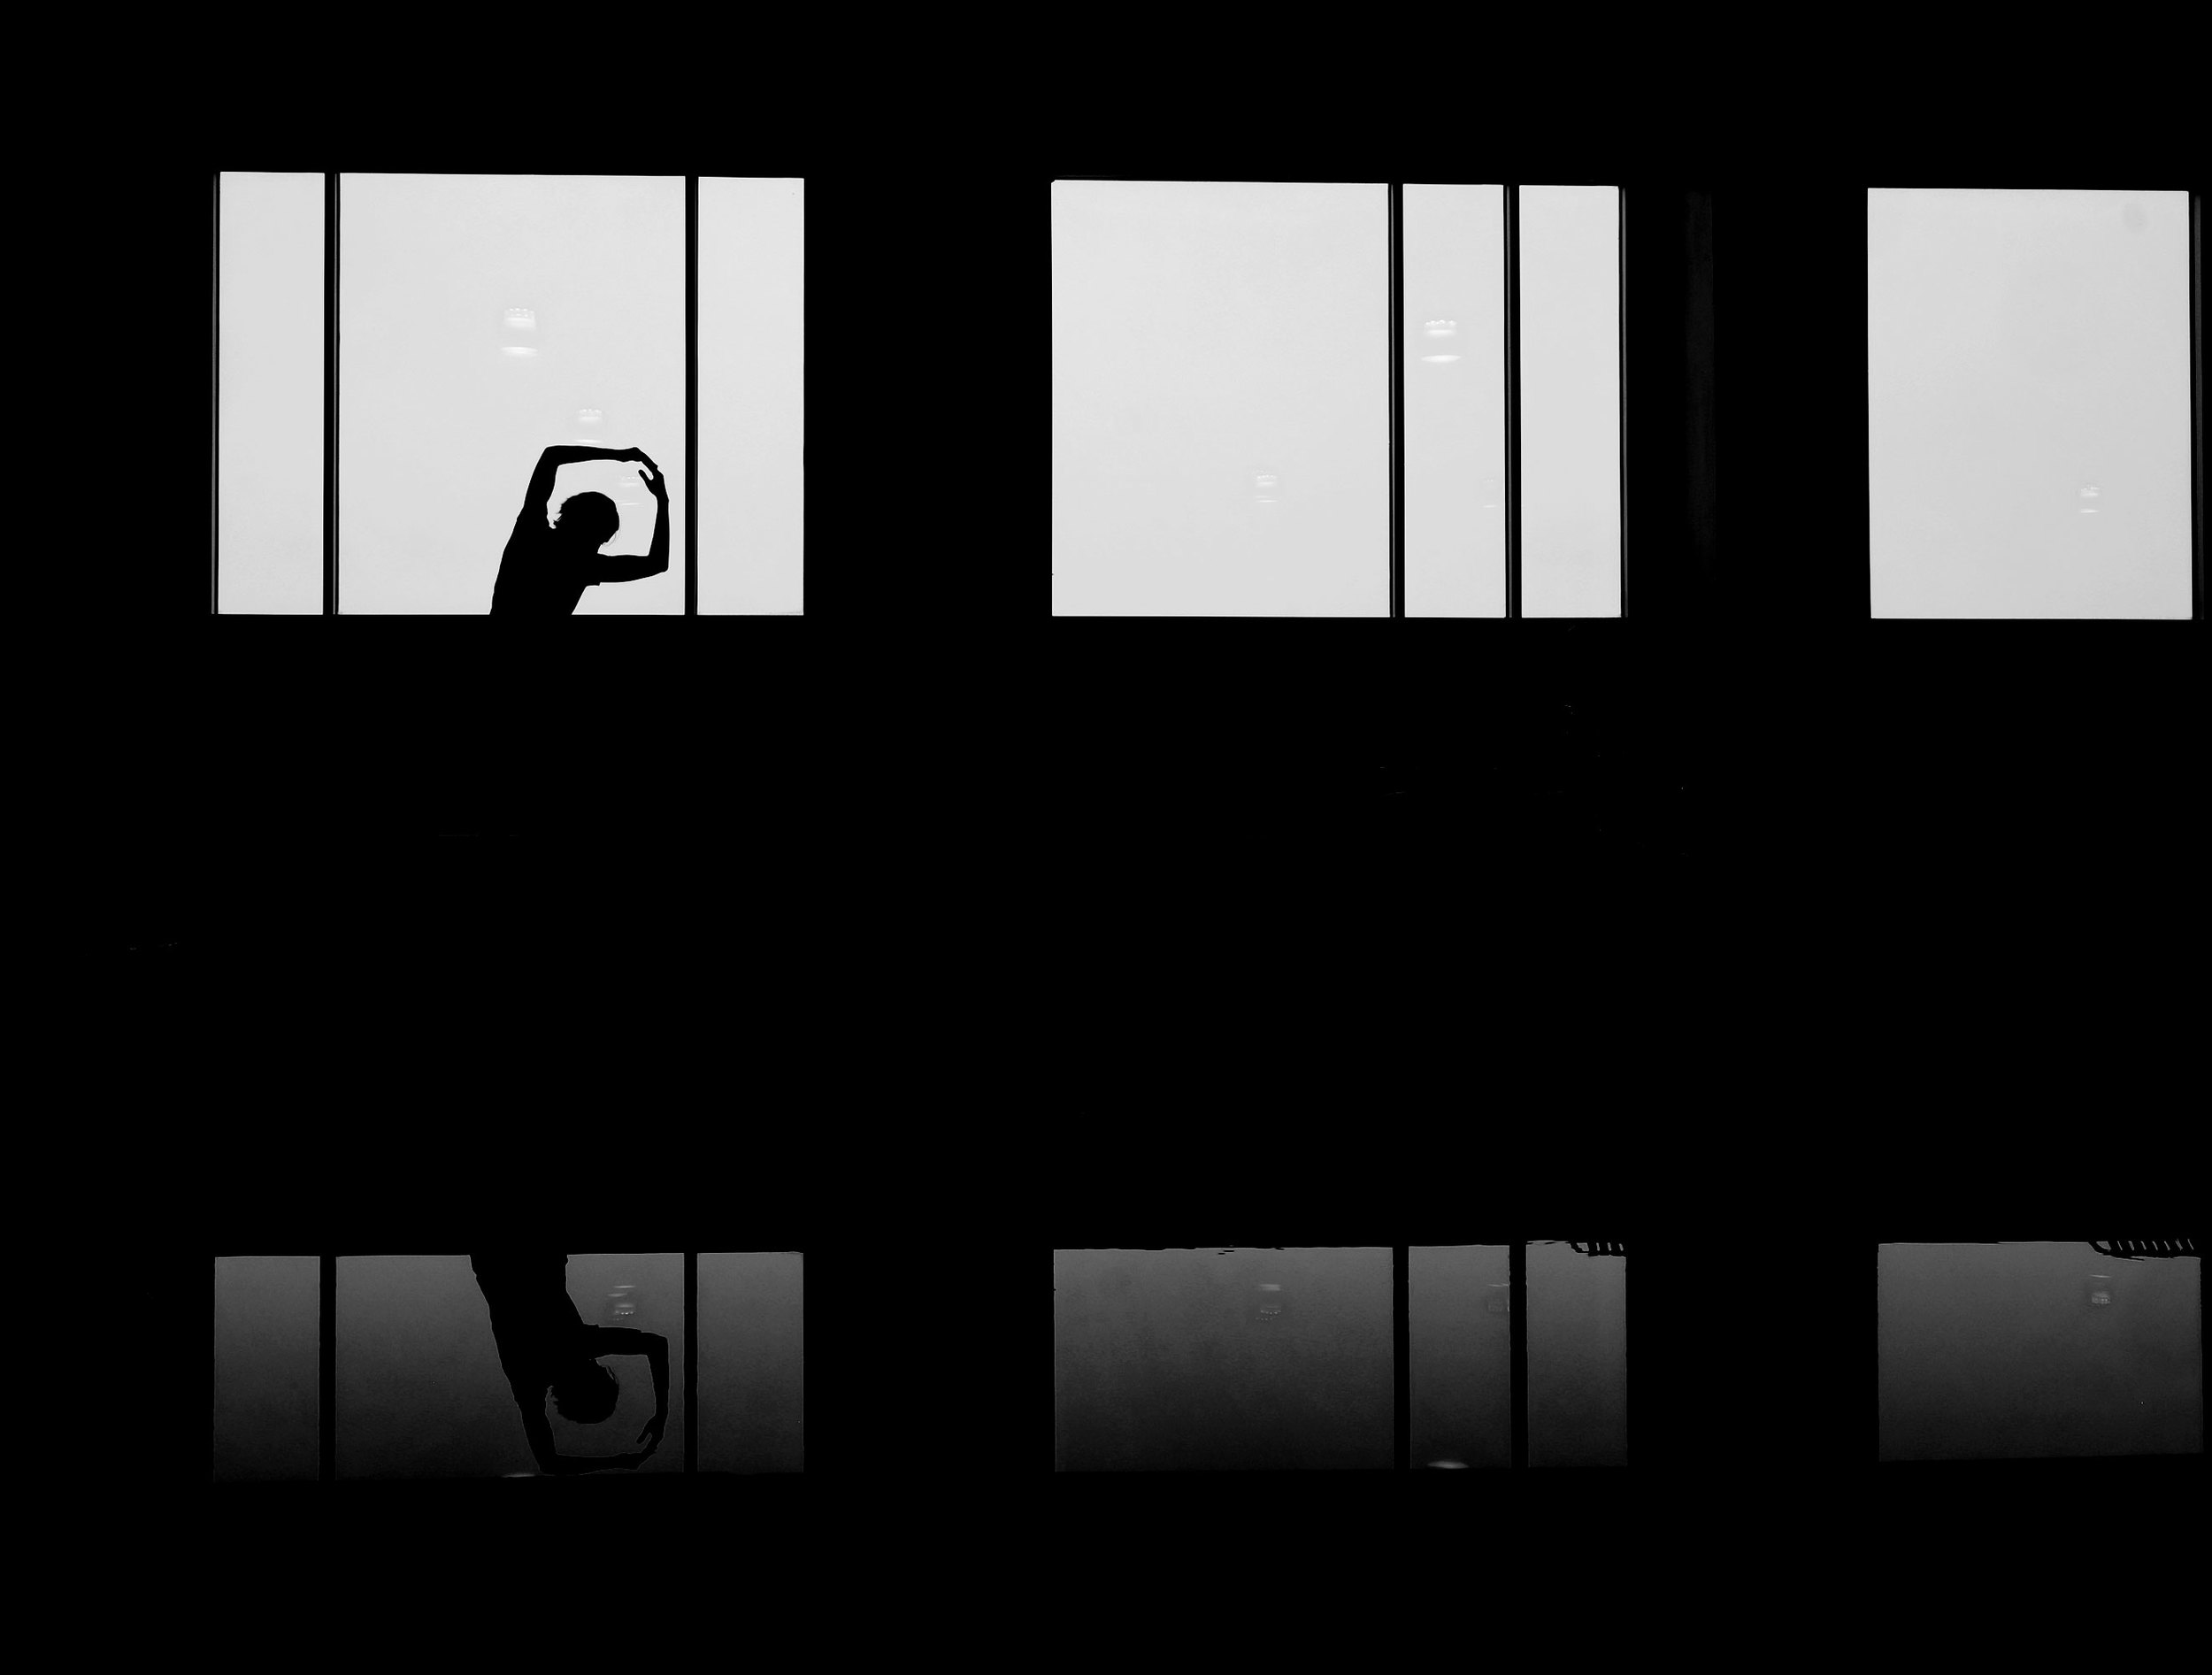 Silhouette of a person stretching in the light of a window